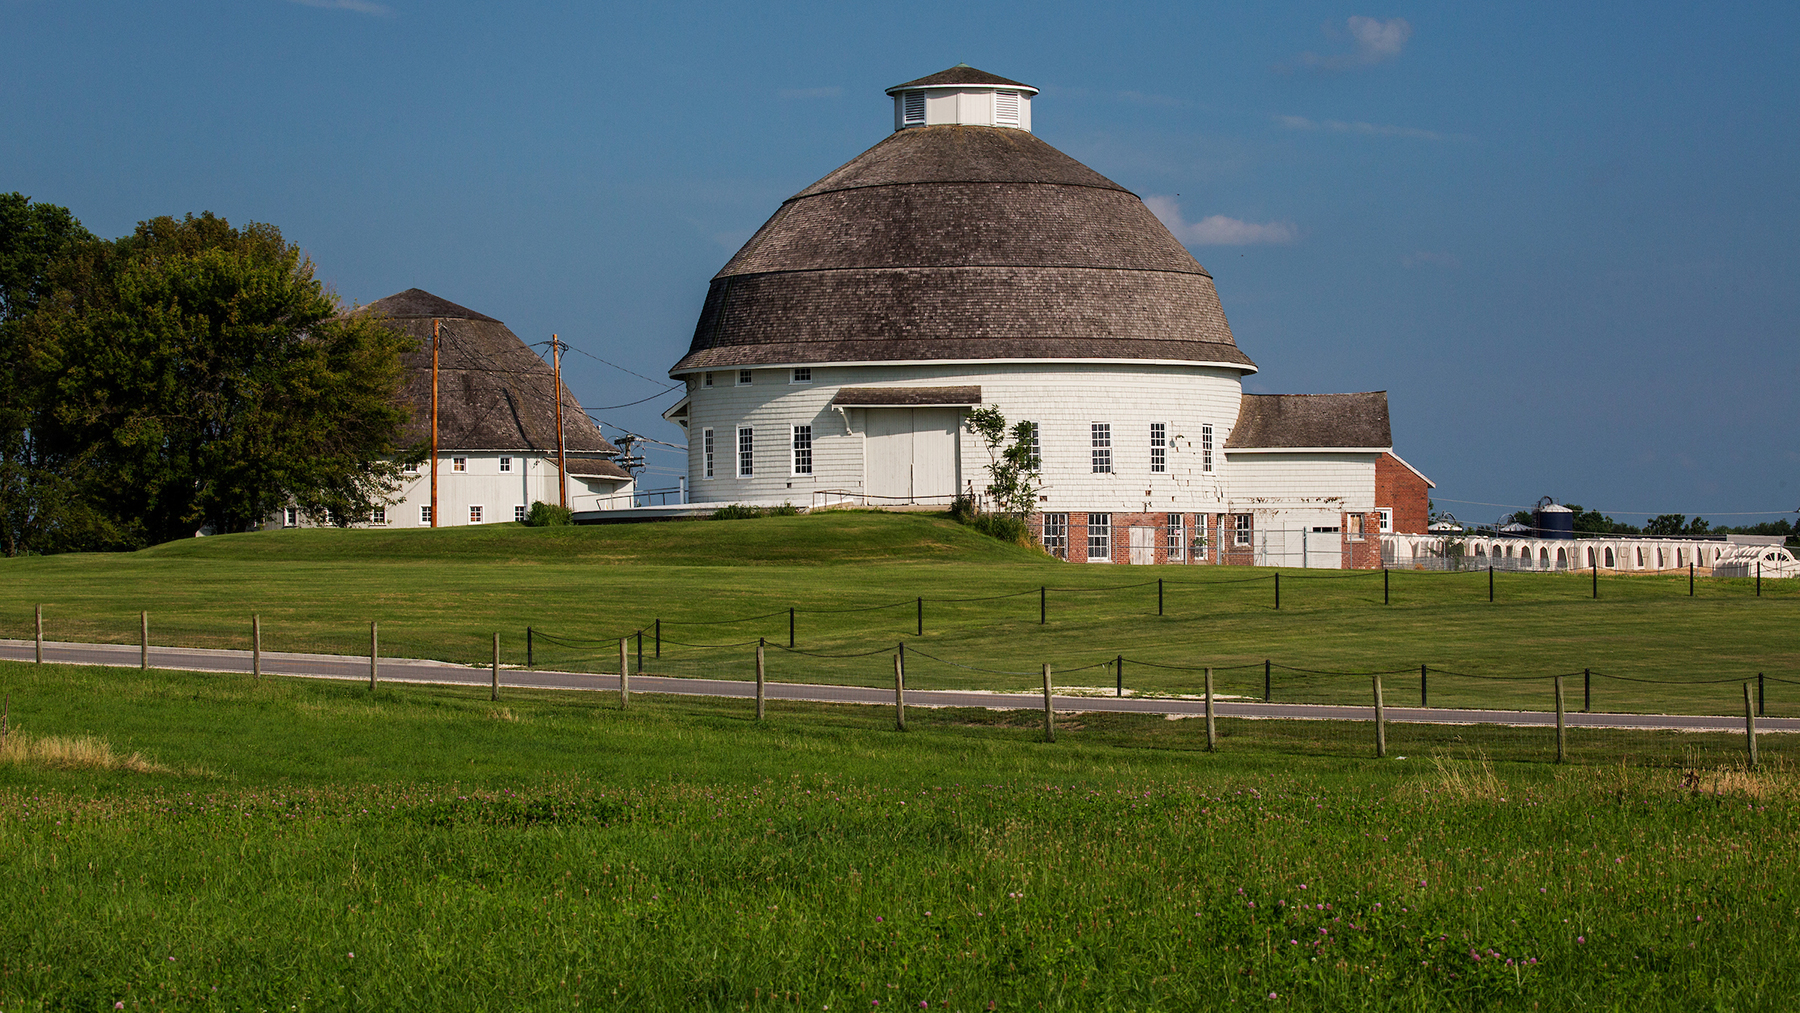 historic round barns on the South Farms area of campus